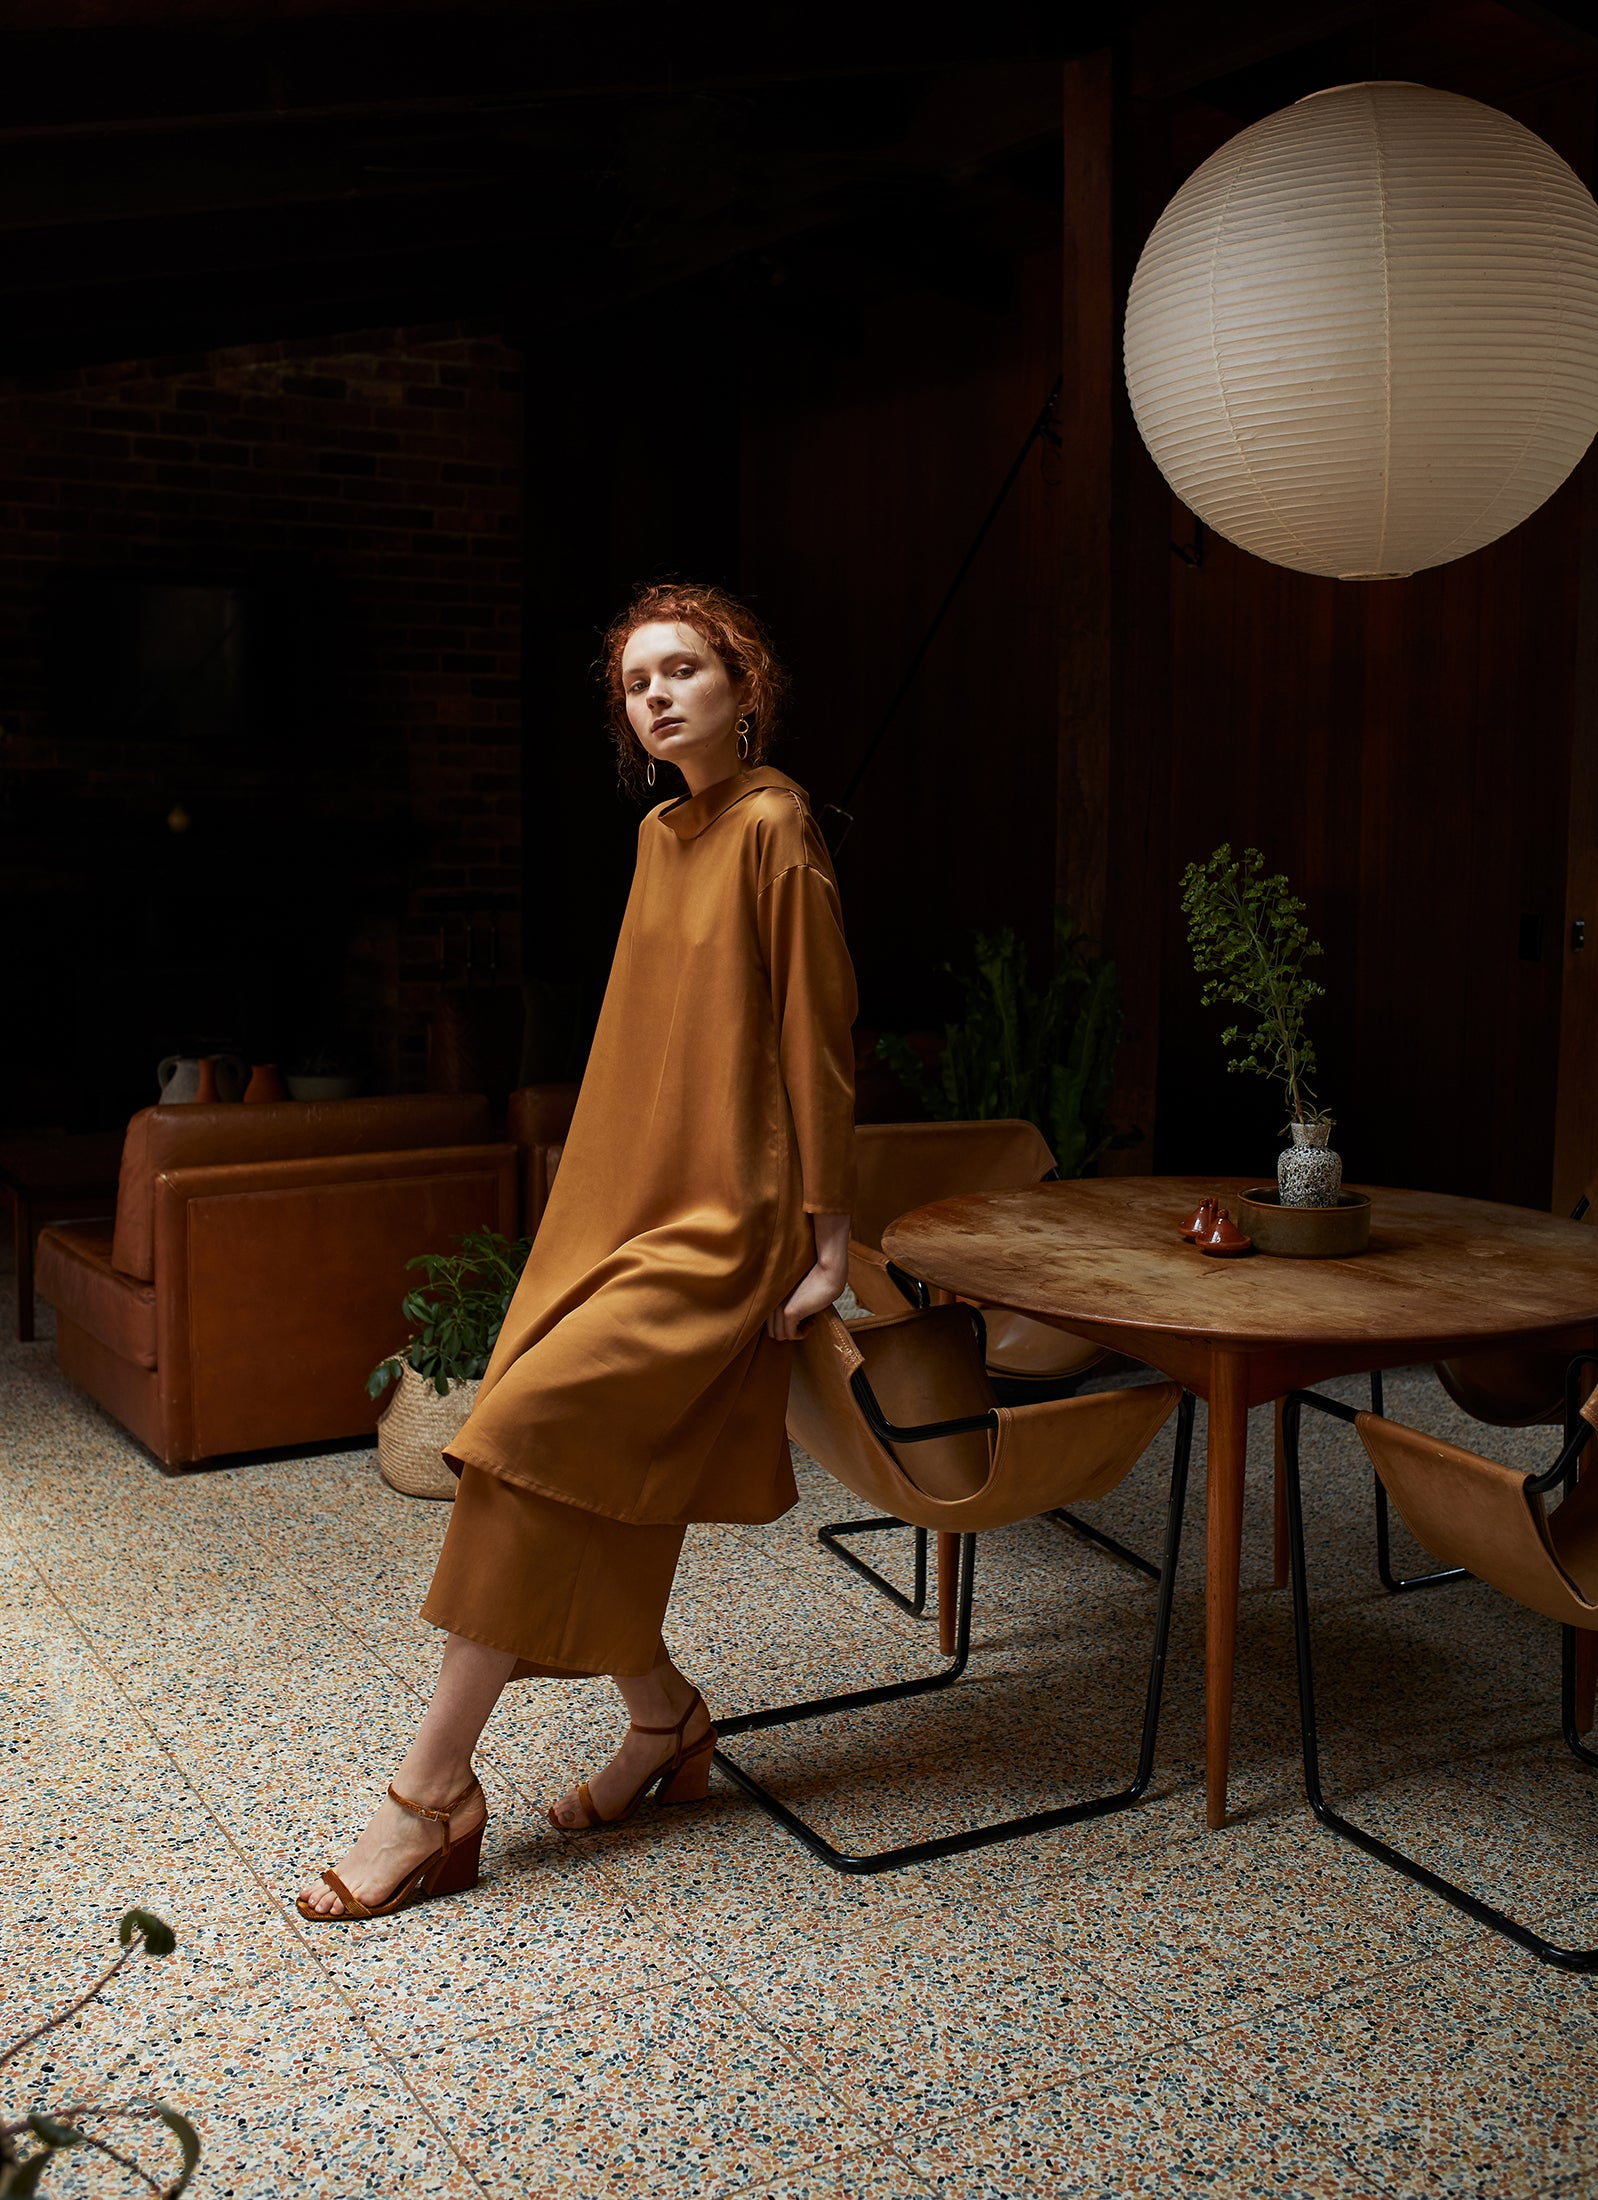 keegan AW19 Woodland Campaign Ethical Fashion Made in Melbourne Australia Mustard Dress Alistair Knox